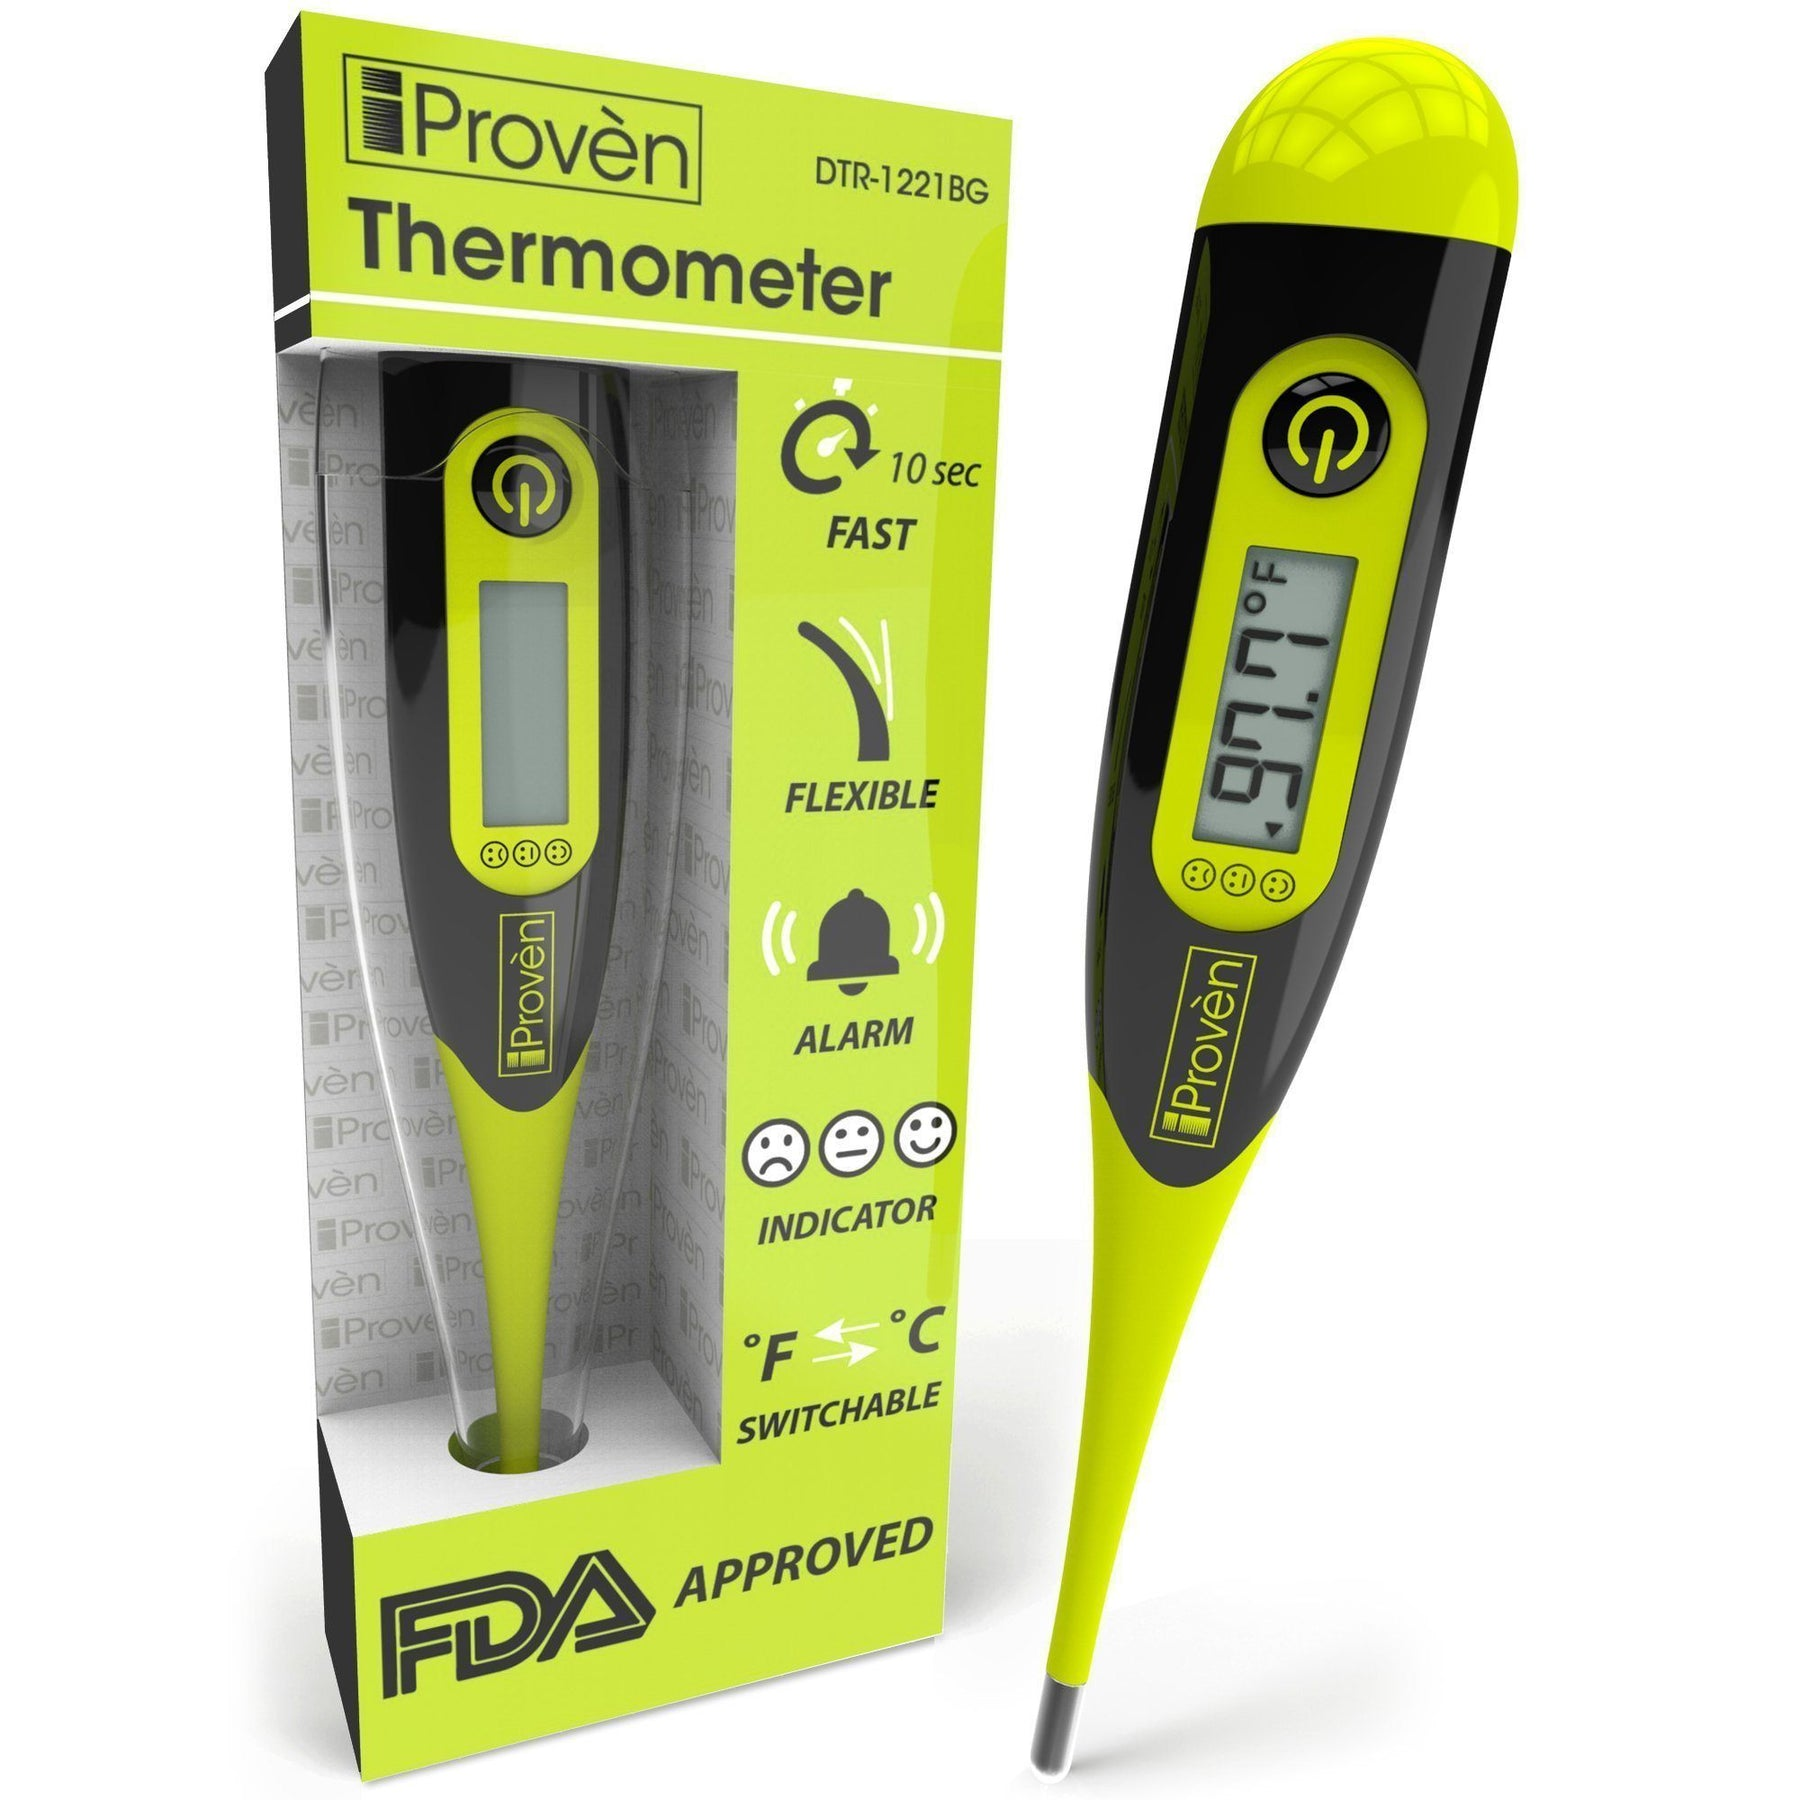 iProvèn's DTR-1221BG: The Thermometer For Dads Who Protect Their Family